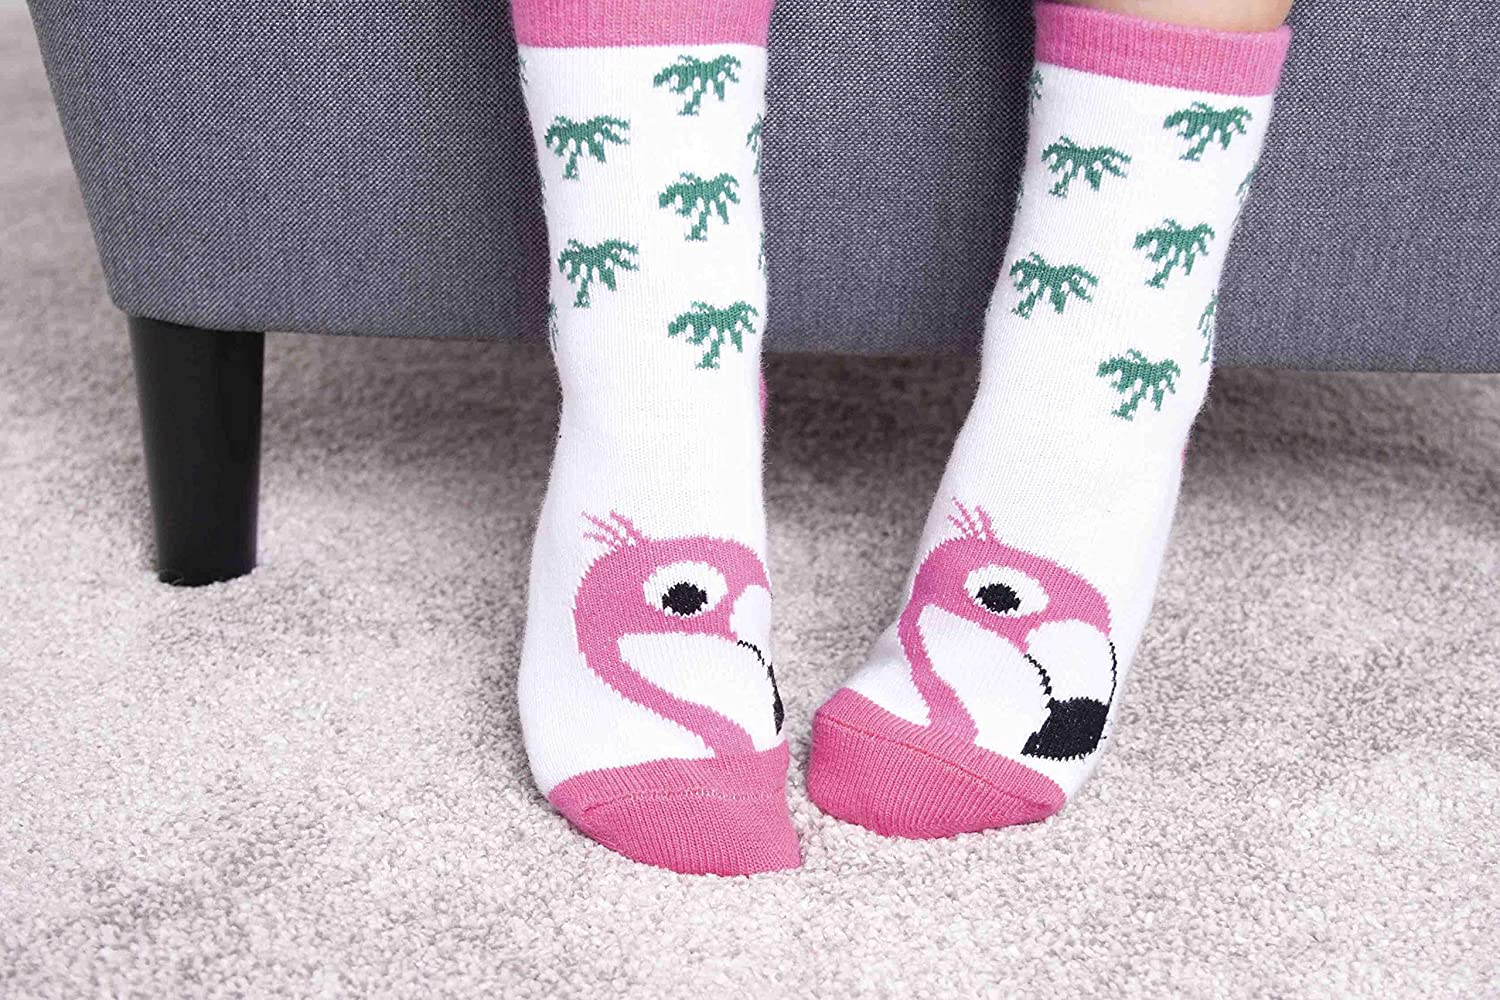 Cute Baby Socks With Characters Florence Flamingo and Linda Llama by Ziggle Soft